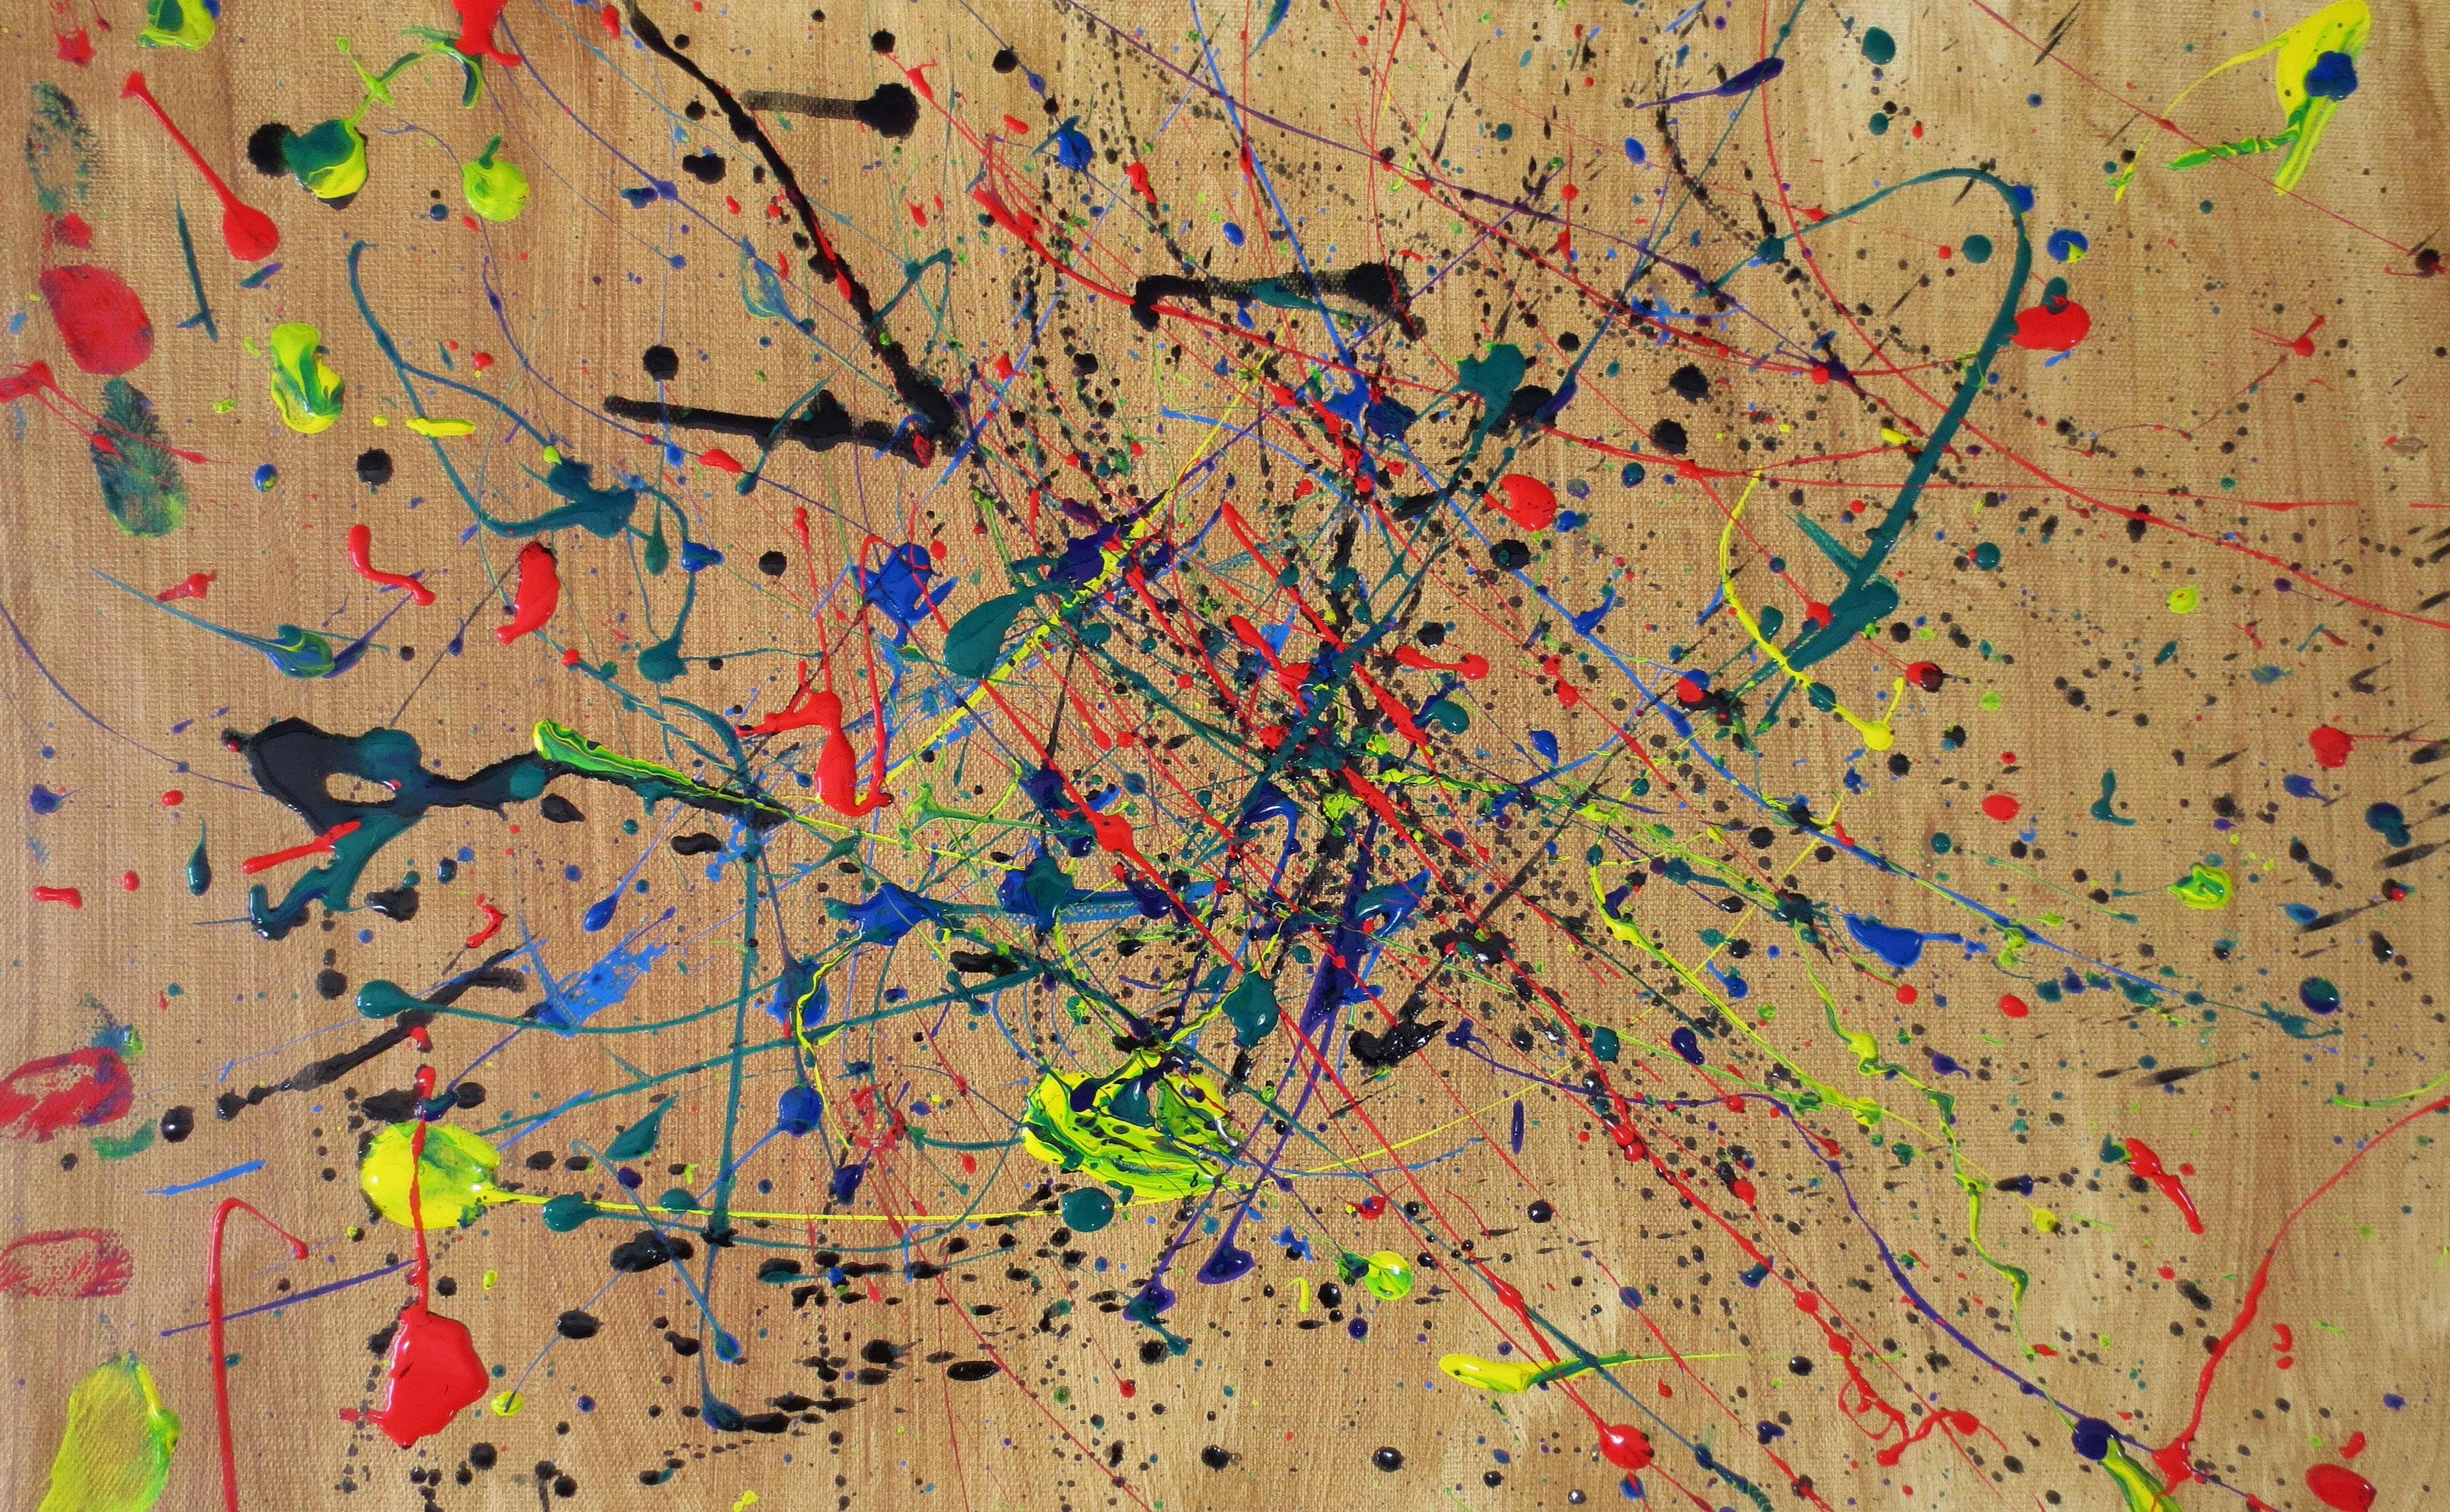 Jacksonpollock Art Background Images Android Wallpapers 4185x2583